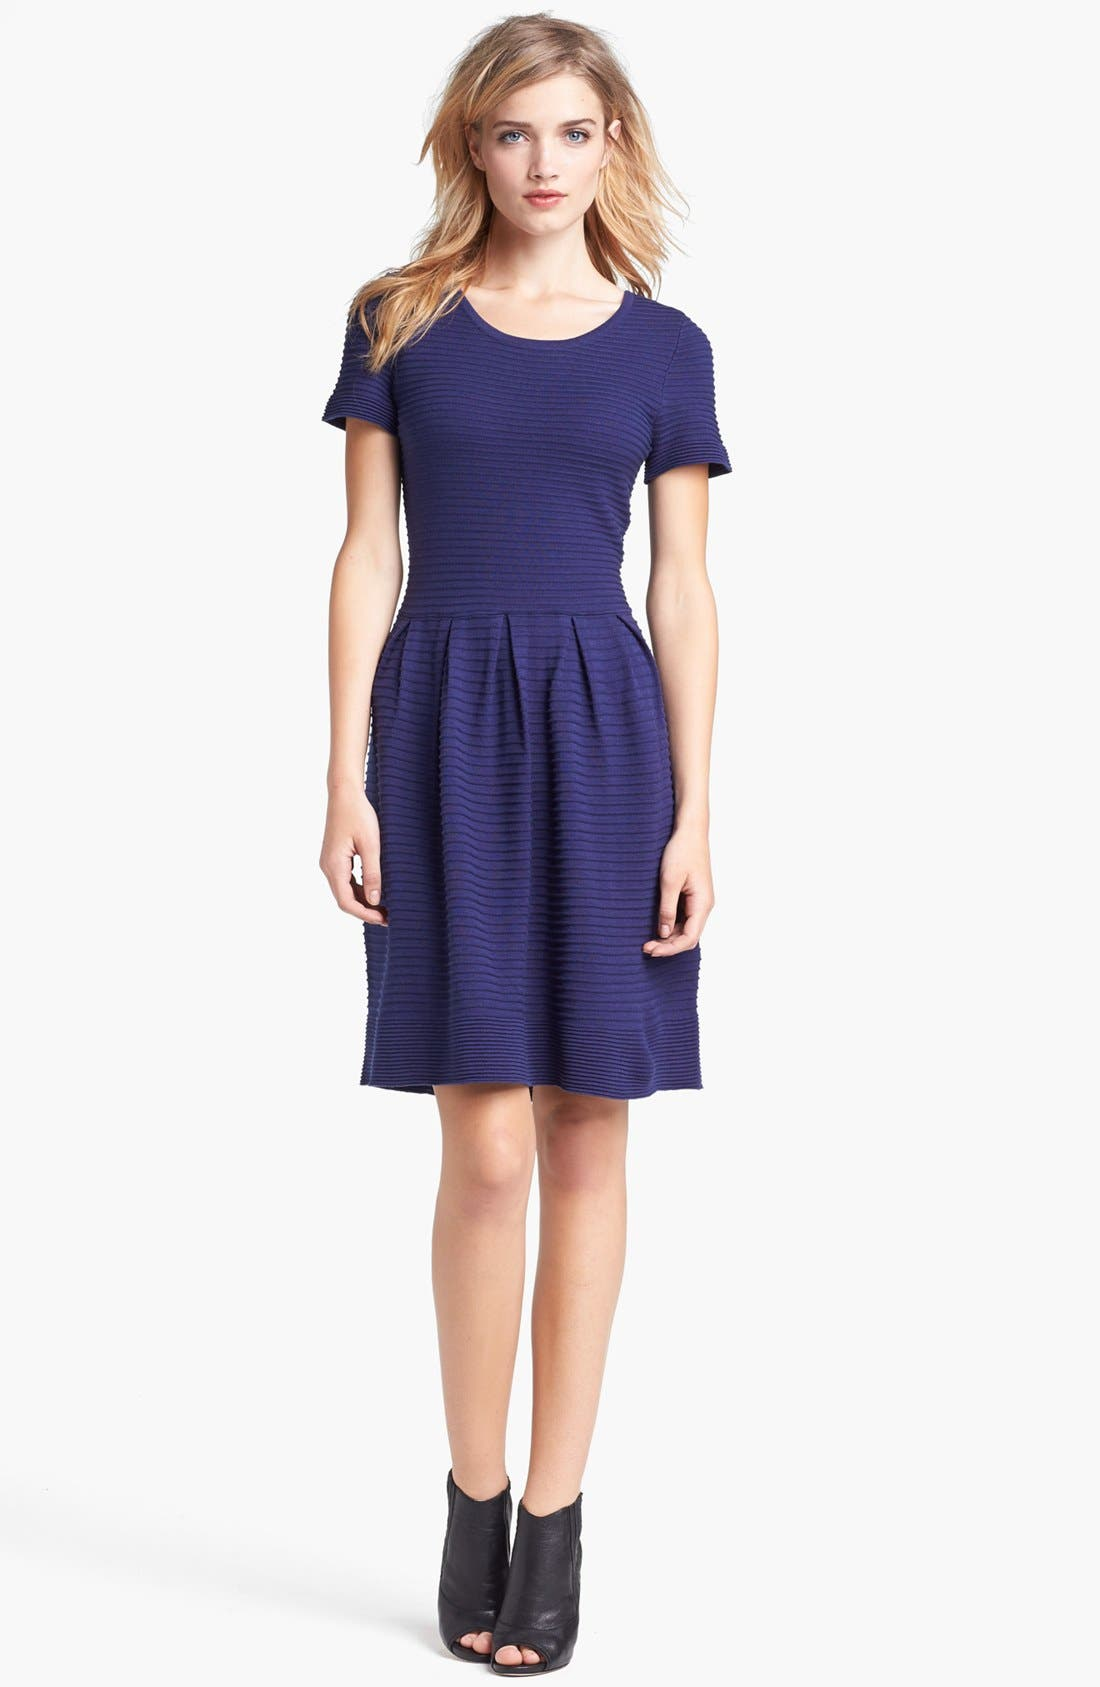 Alternate Image 1 Selected - Taylor Dresses Fit & Flare Sweater Dress (Regular & Petite)